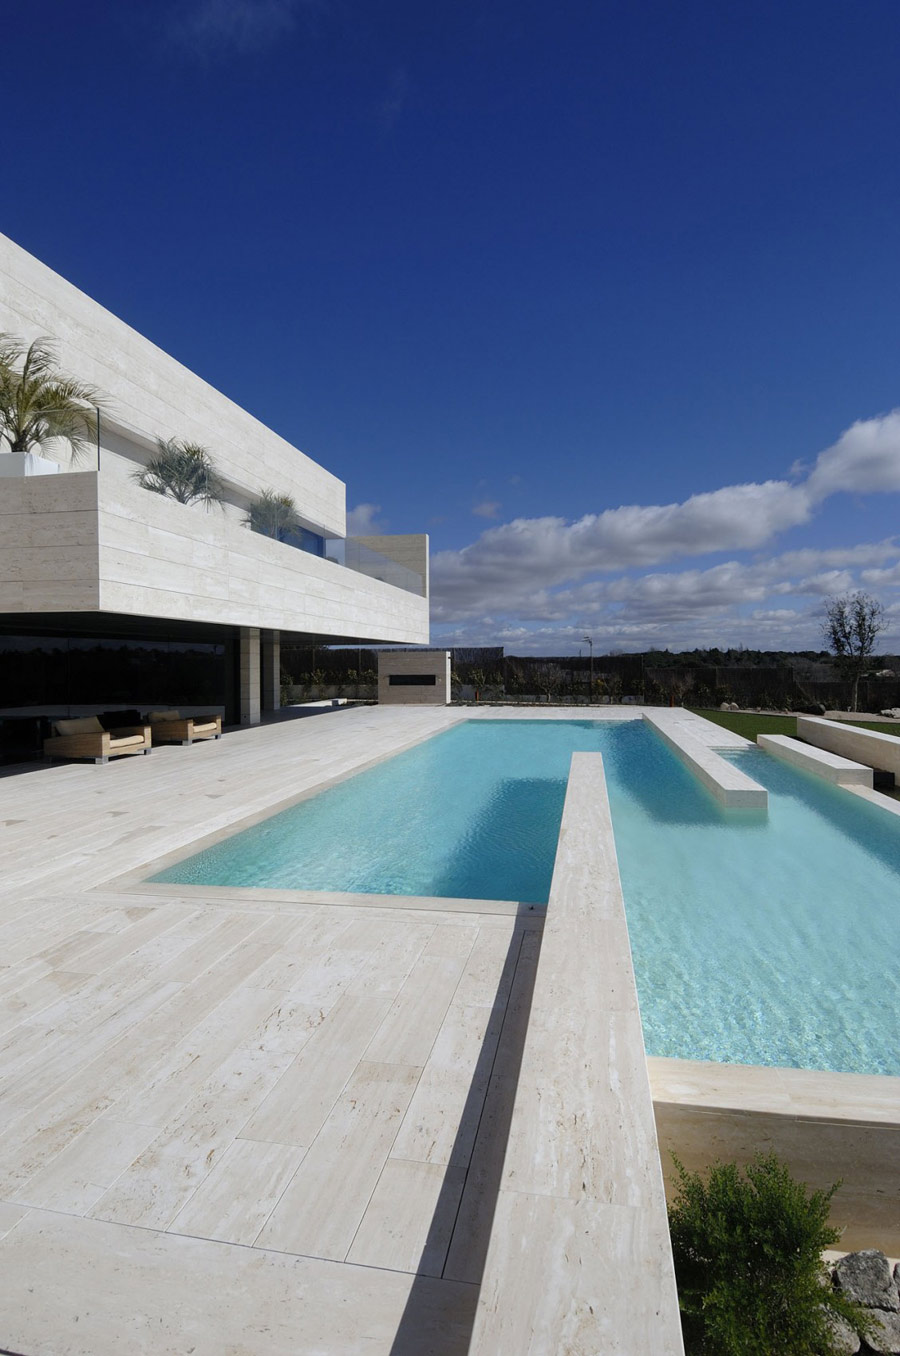 Pool, The Vivienda 19 by A-cero